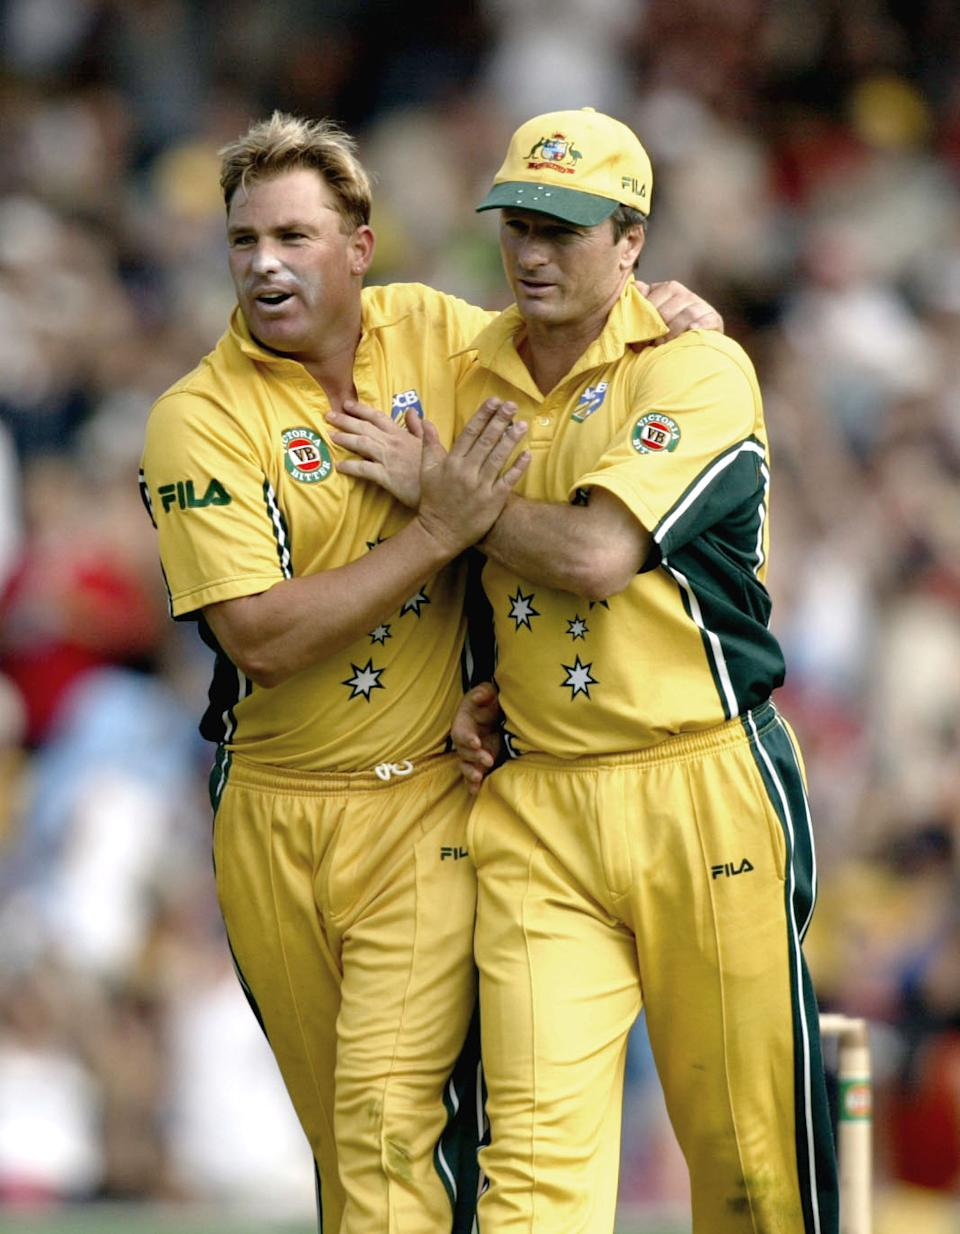 Steve Waugh celebrates and hugs Shane Warne to celebrate the wicket of Chris Carins of New Zealand.